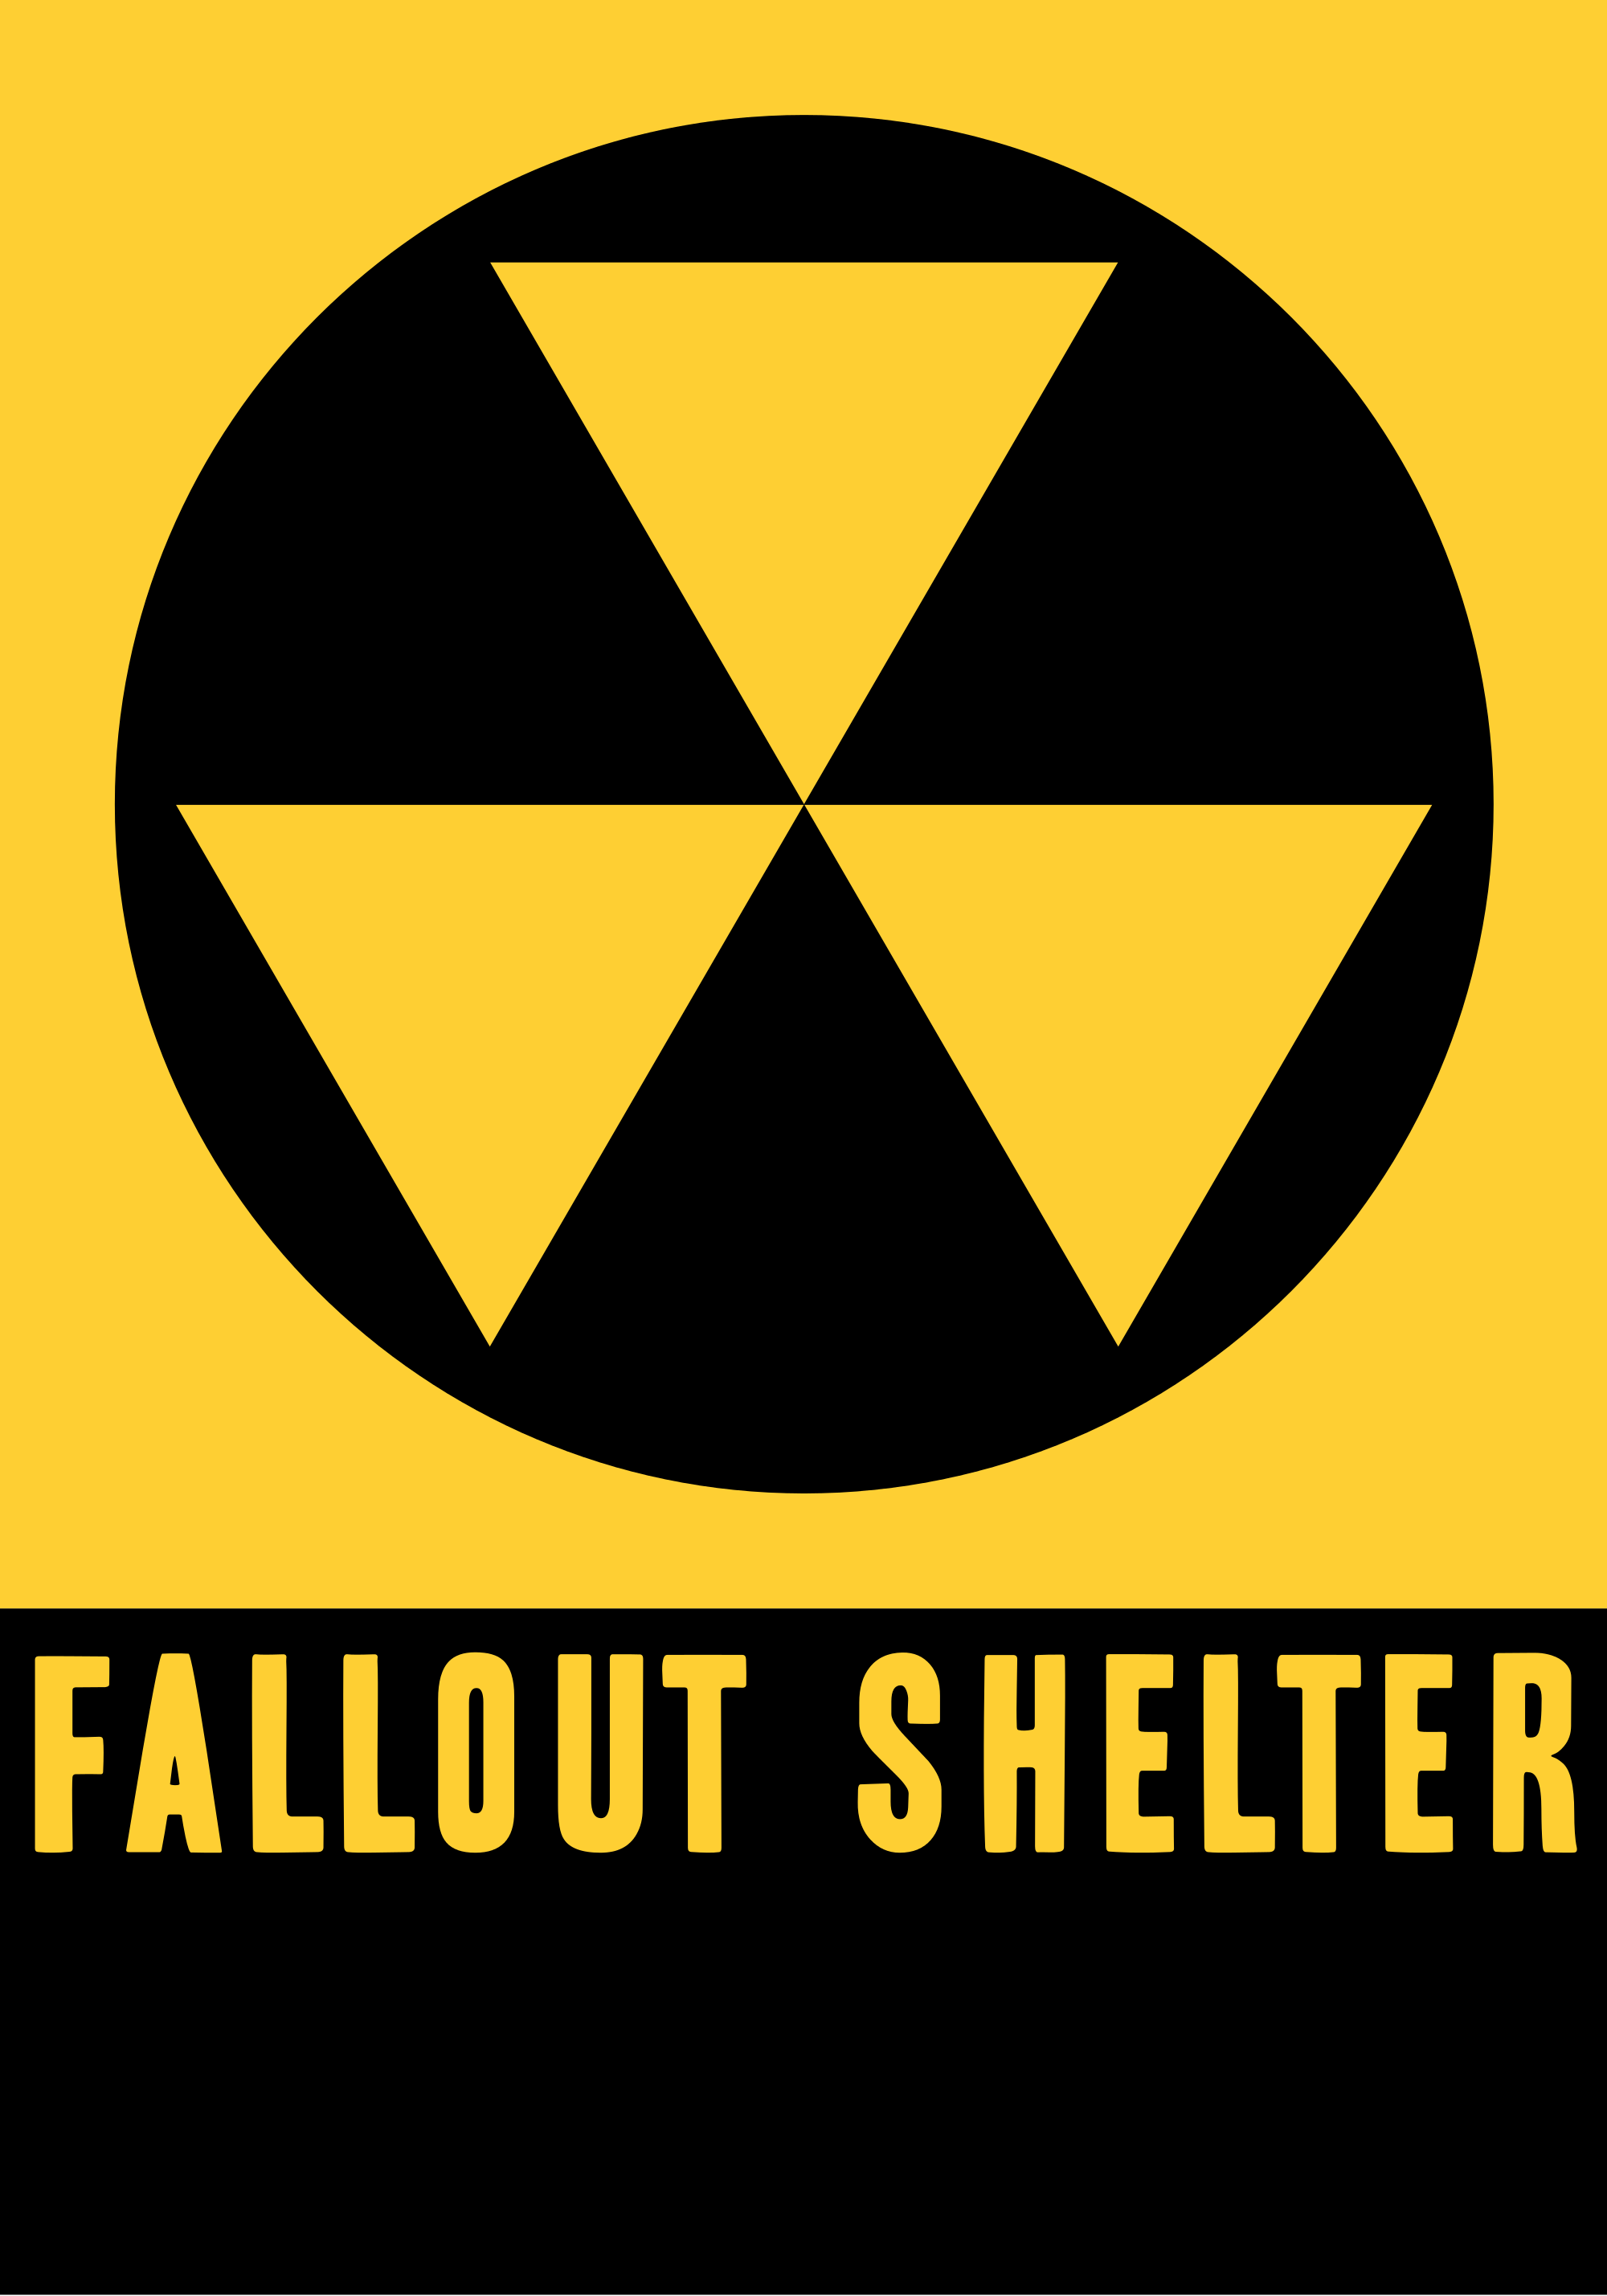 Fallout svg #13, Download drawings